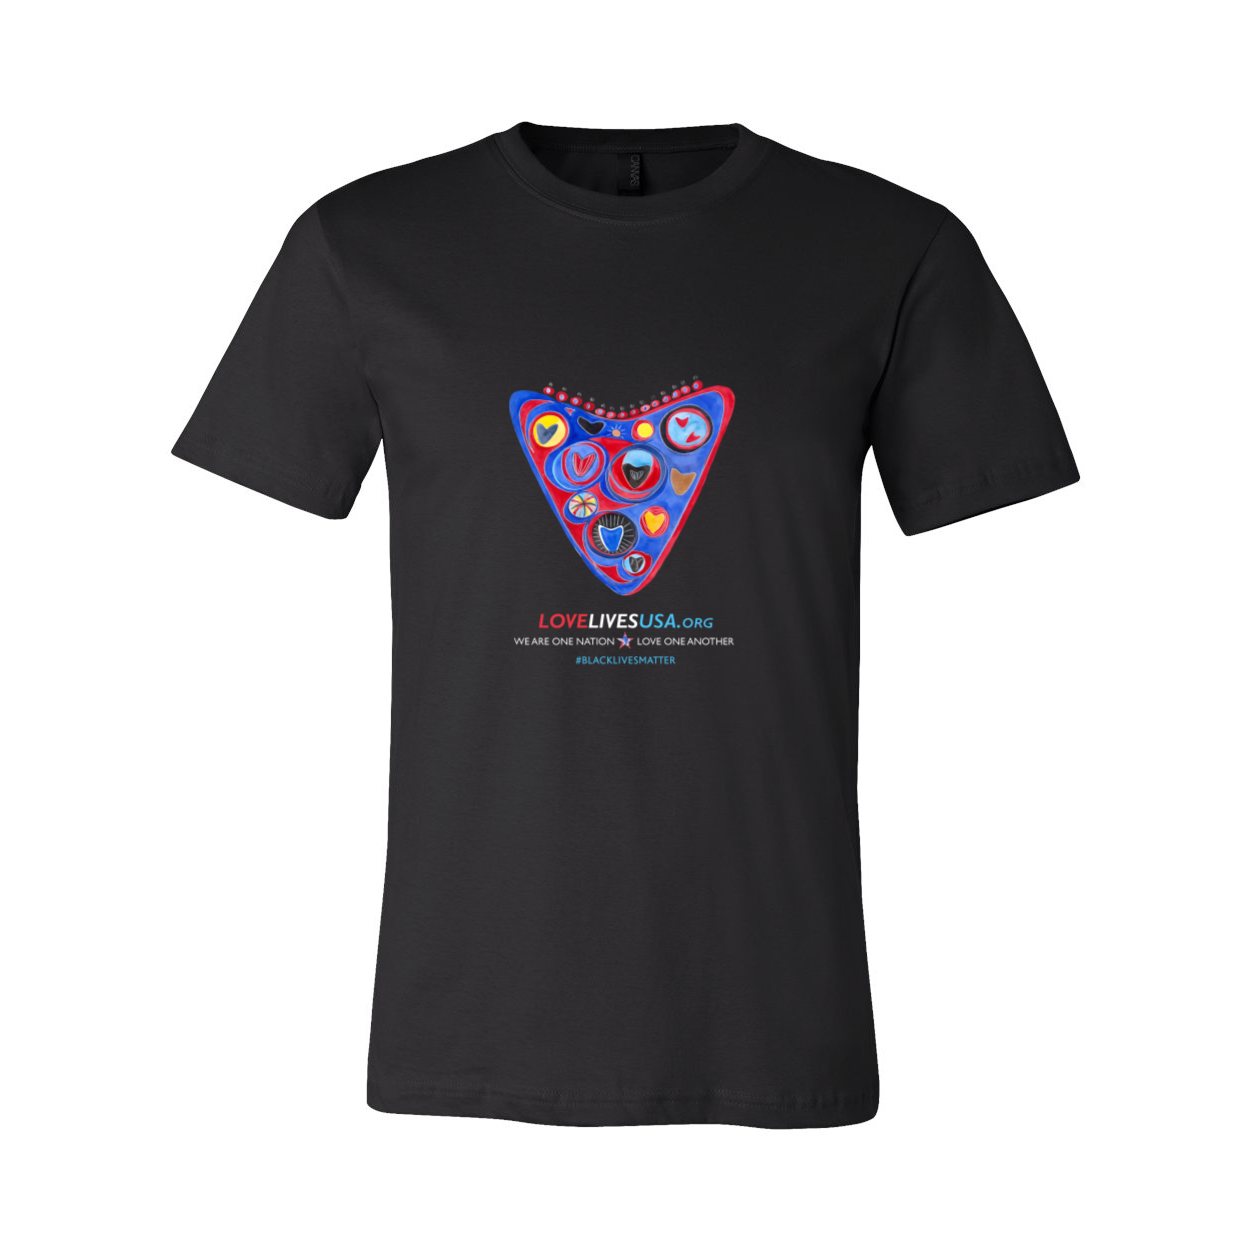 Love Lives USA Short Sleeve Tee